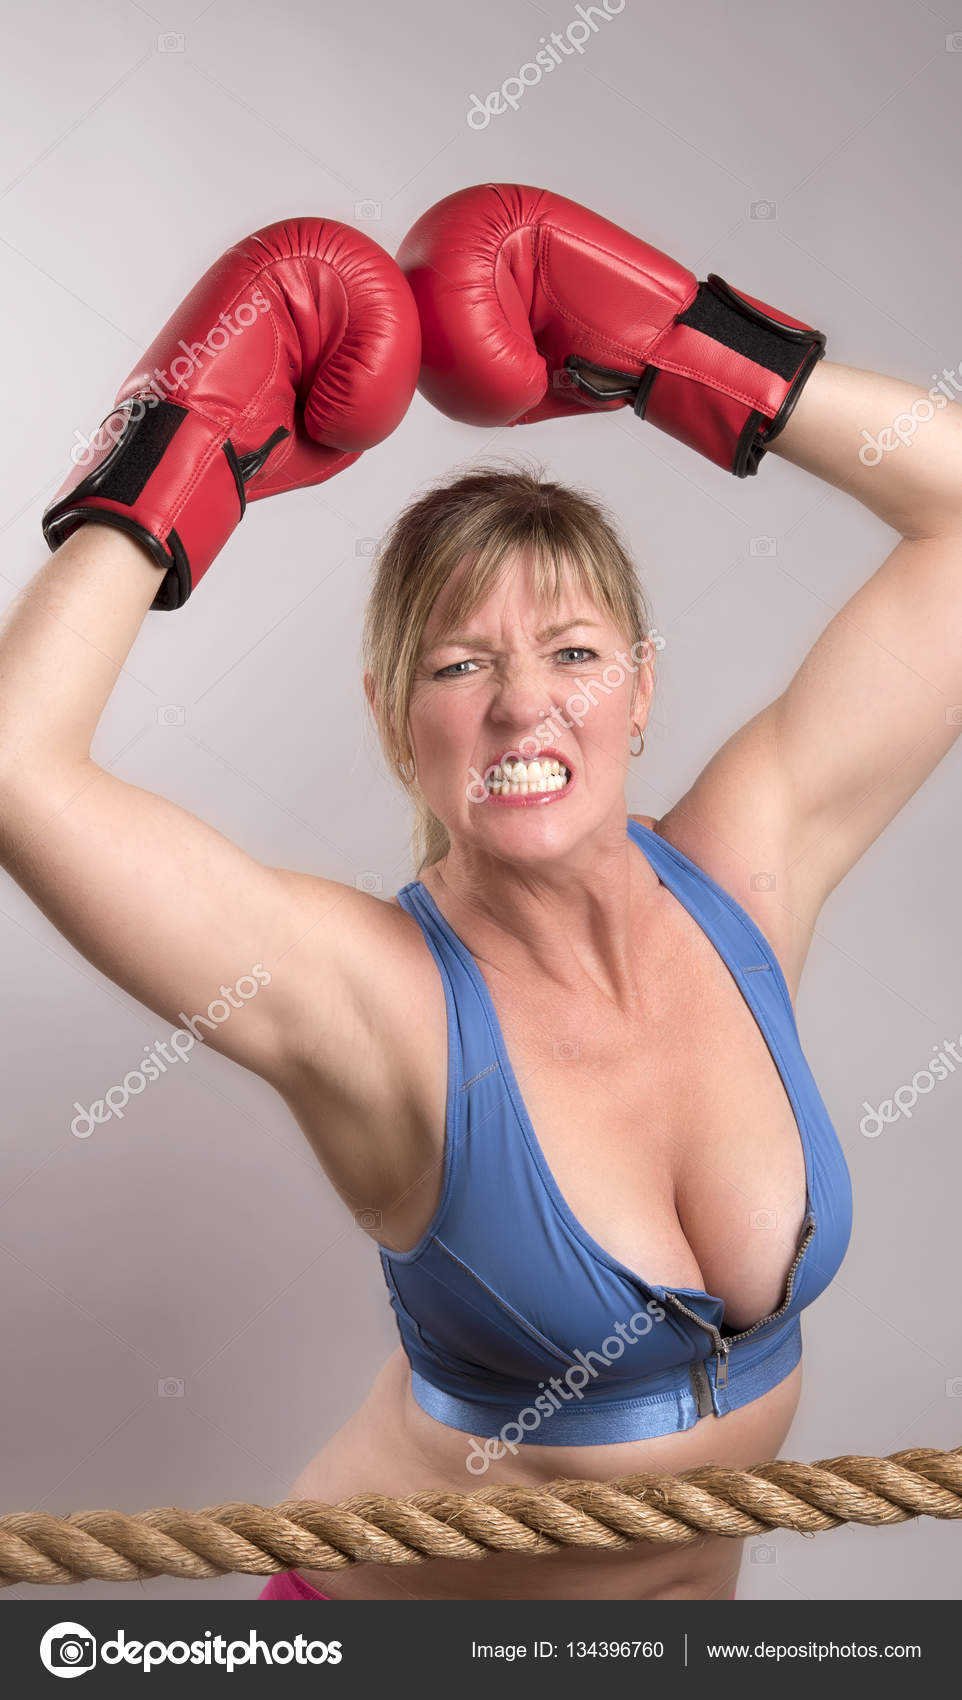 Grimace face clip art stock photo woman pulls a face in upset - Woman Boxer With An Angry Expression On Her Face Stock Image